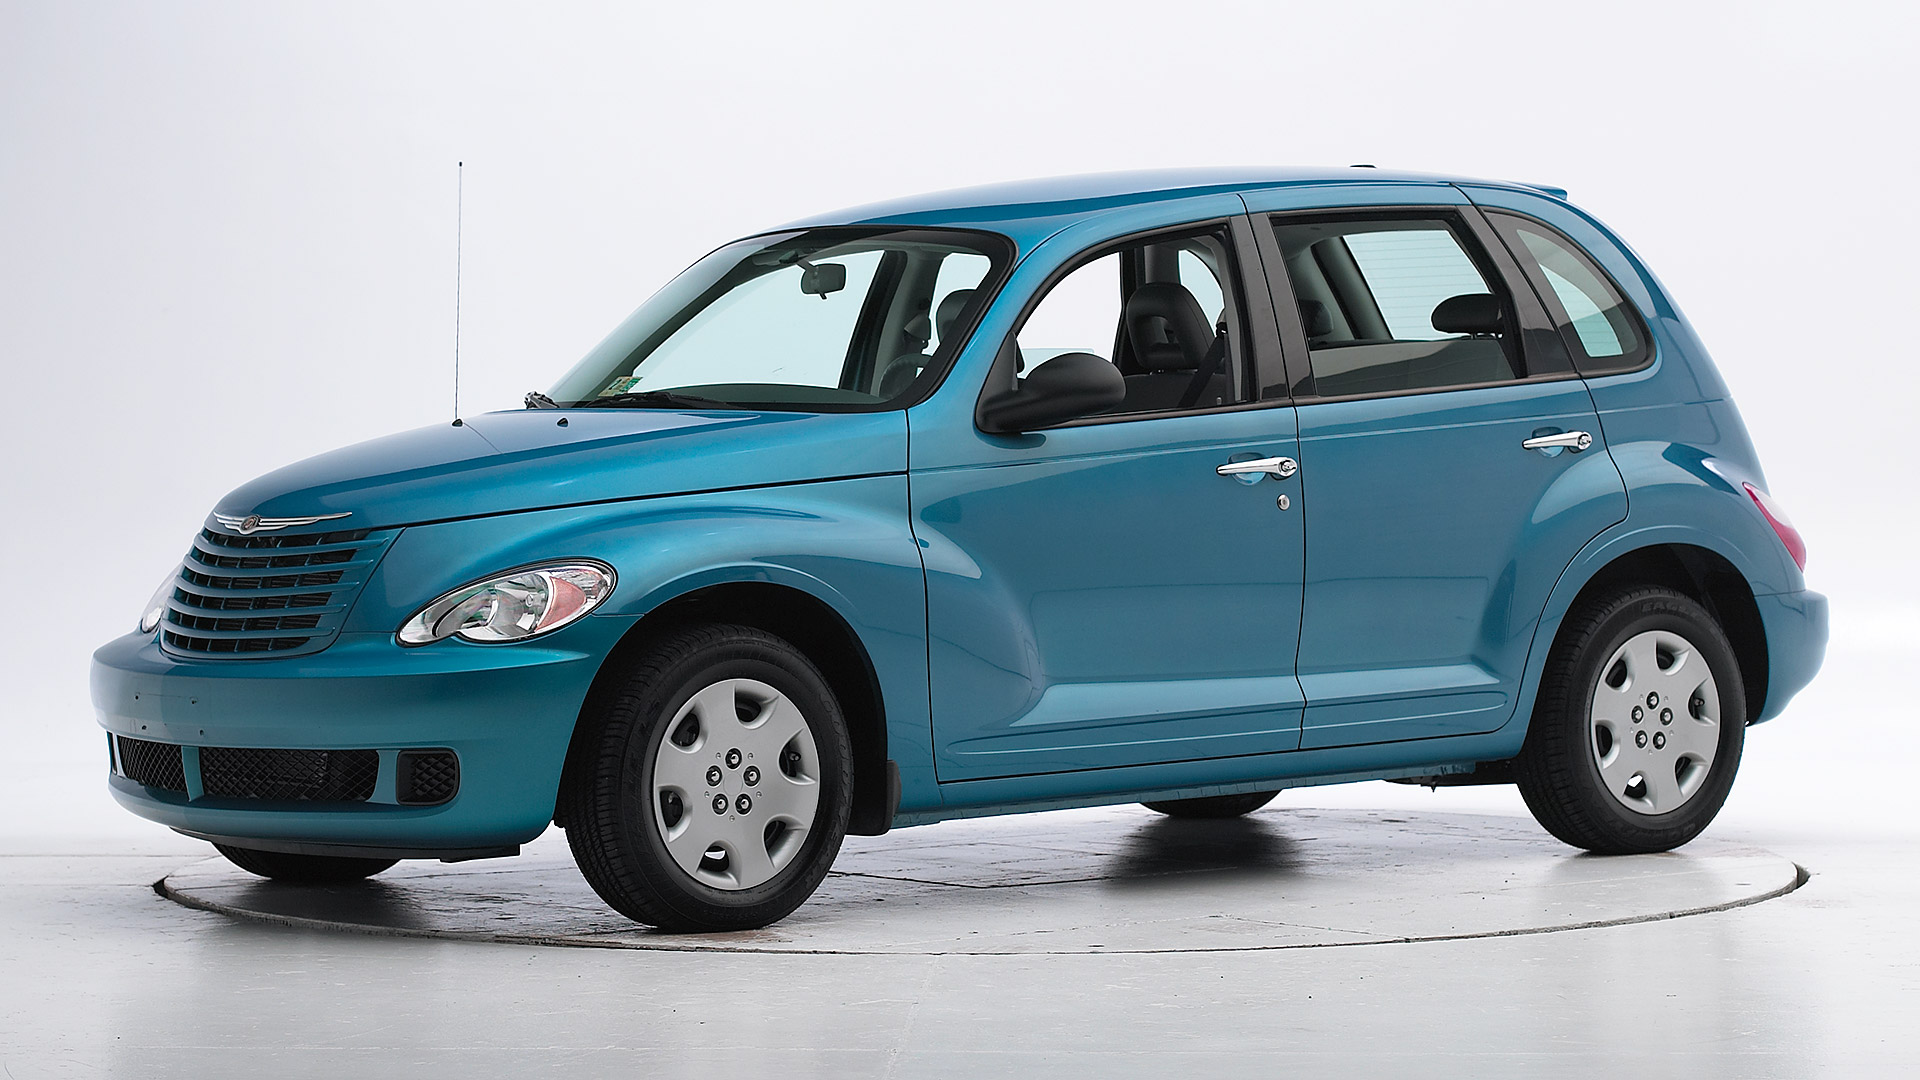 2008 Chrysler PT Cruiser 4-door wagon